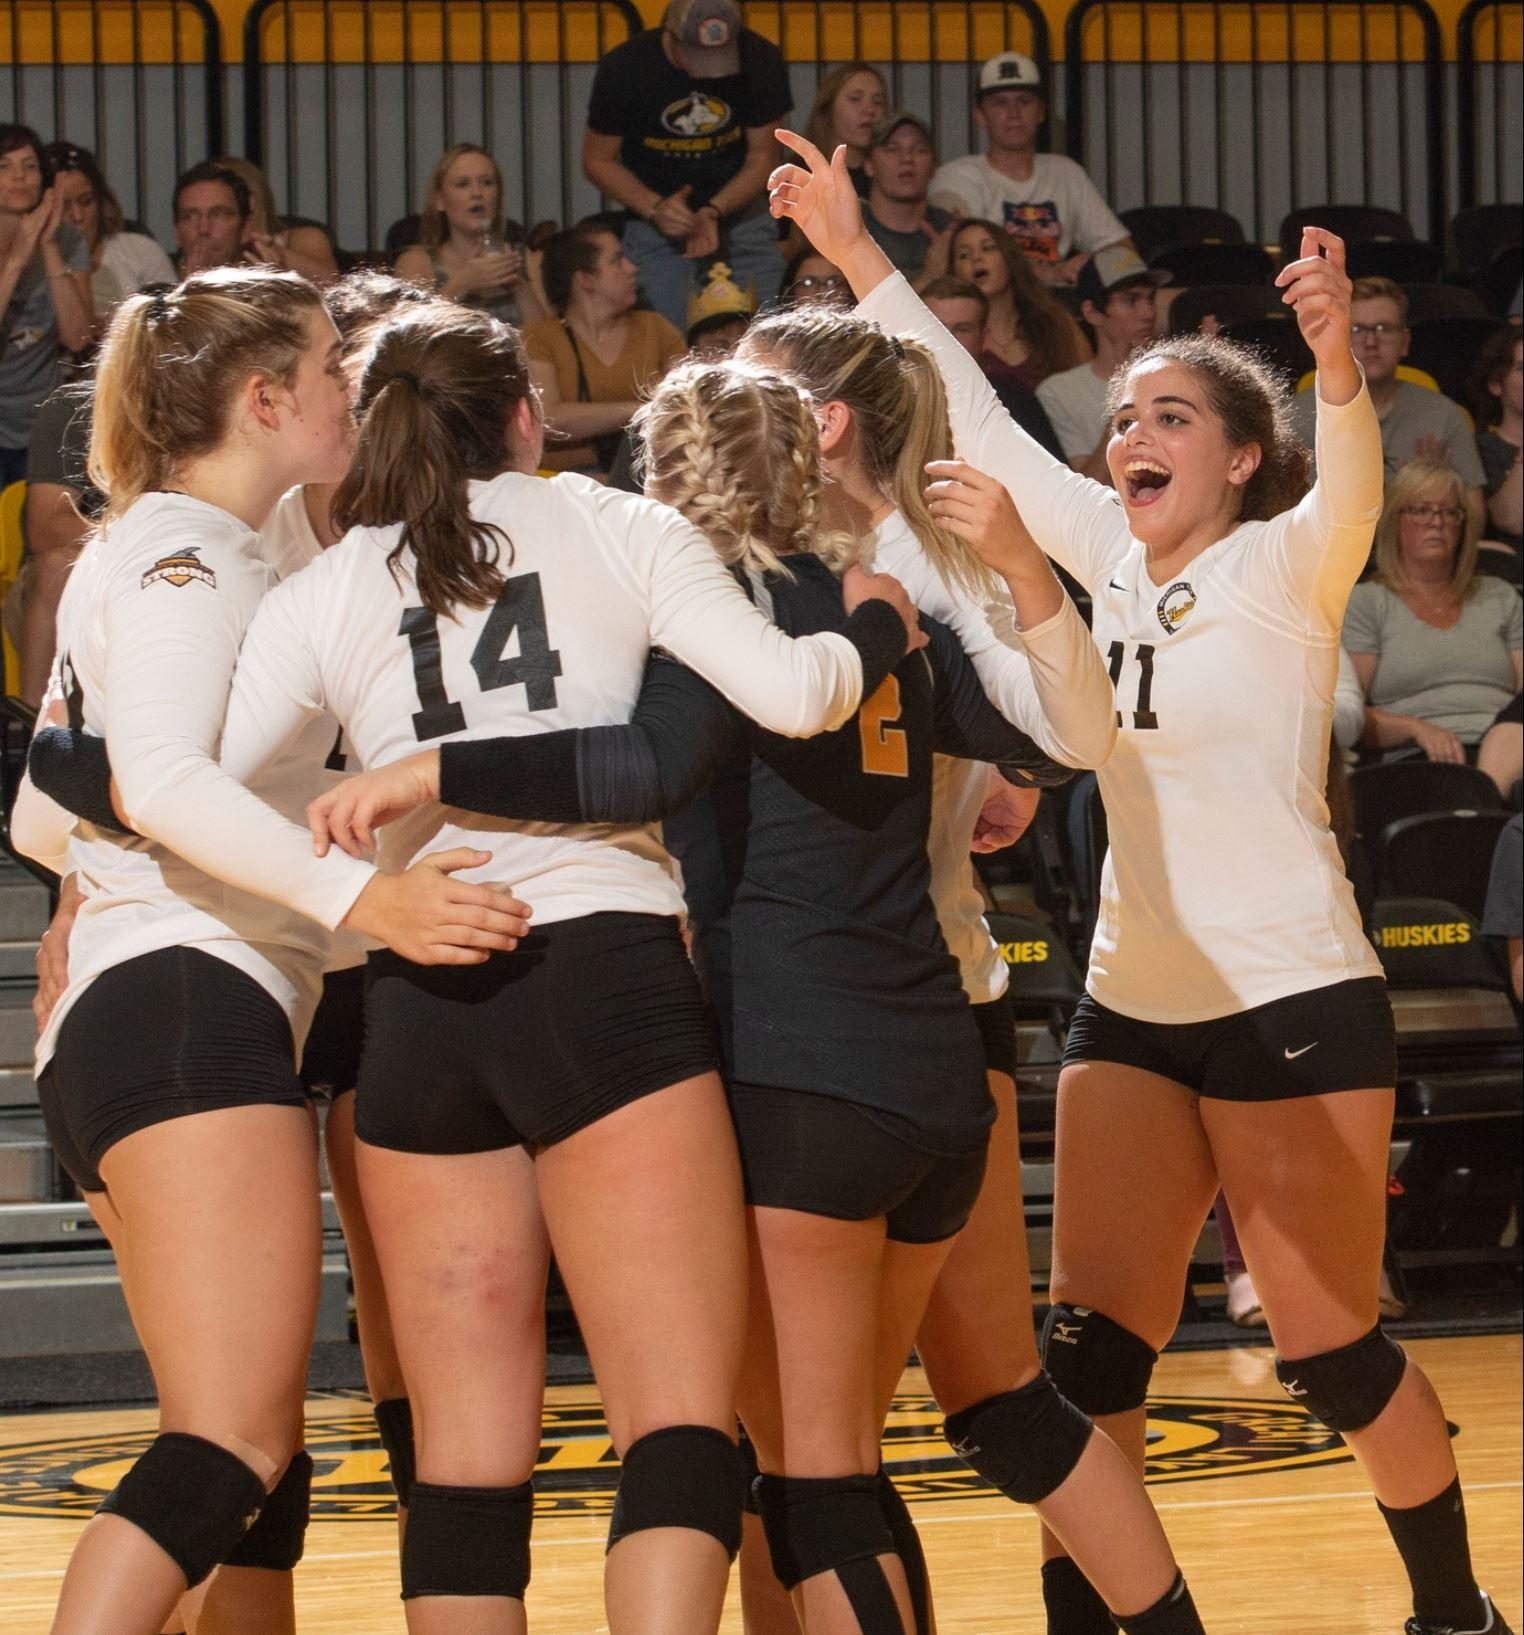 Players from the Michigan Tech volleyball team celebrate their victory.